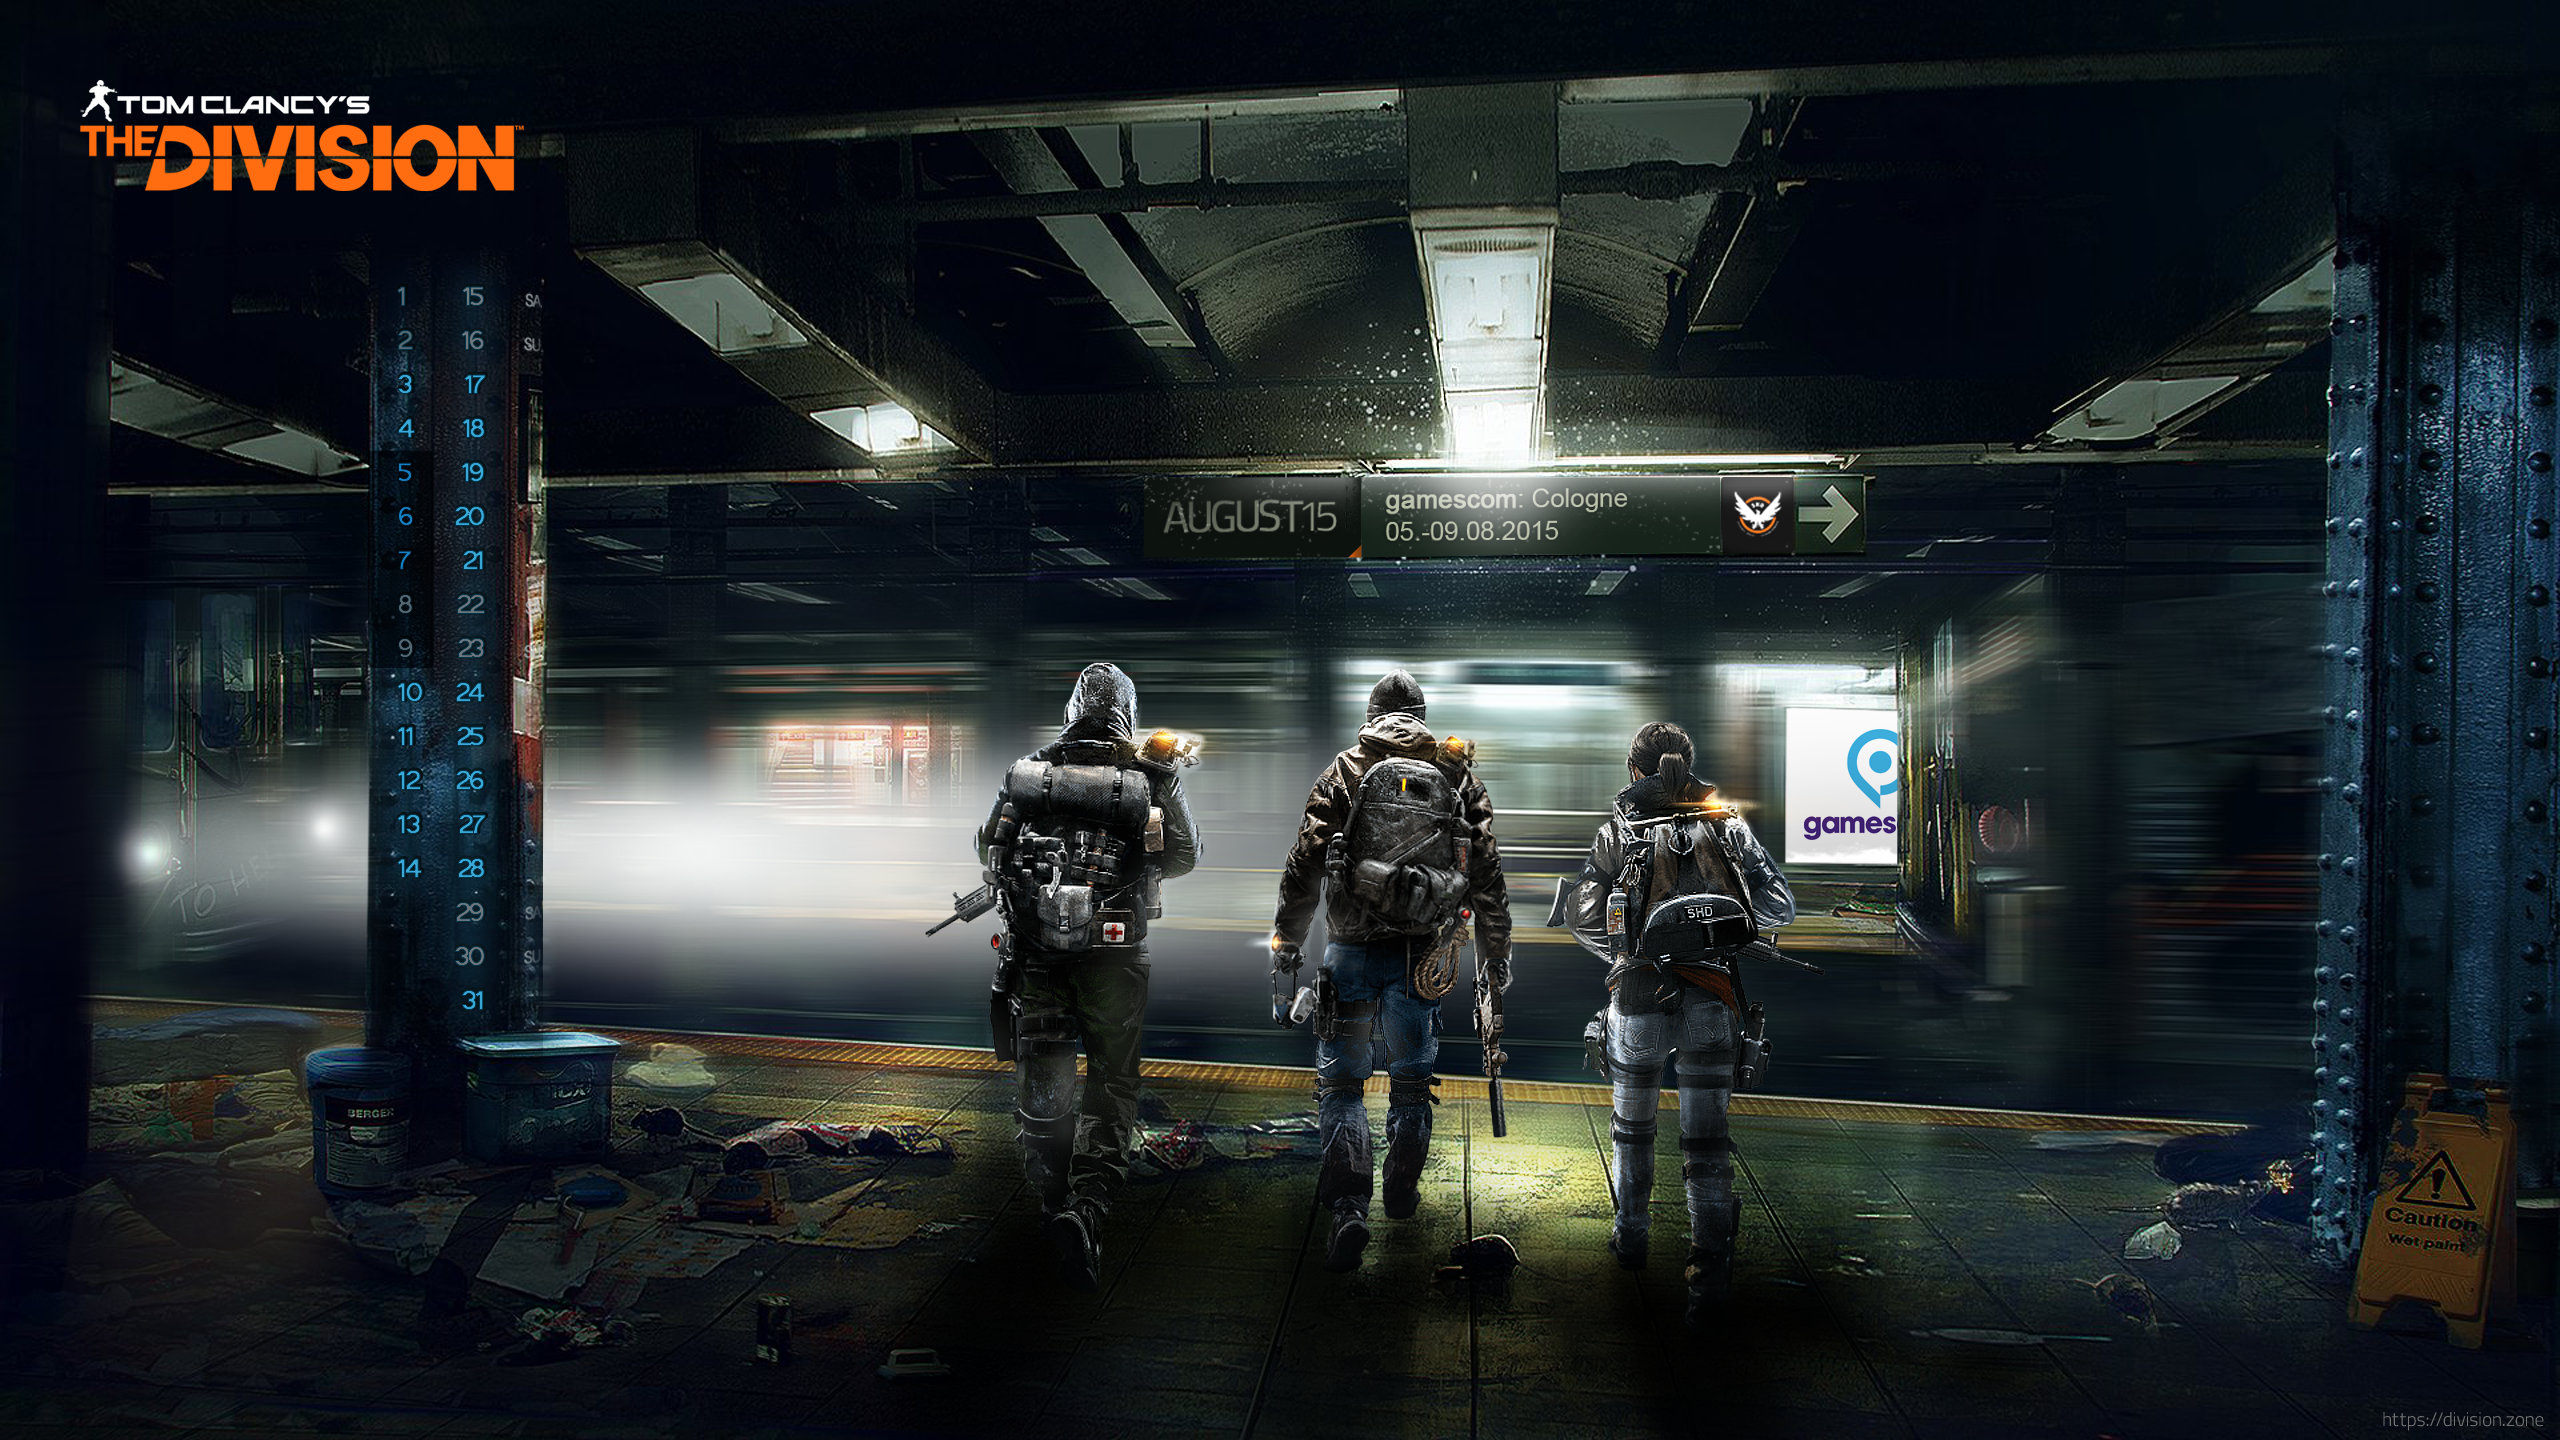 Desktop Wallpaper August 2015 The Division Zone 2560x1440